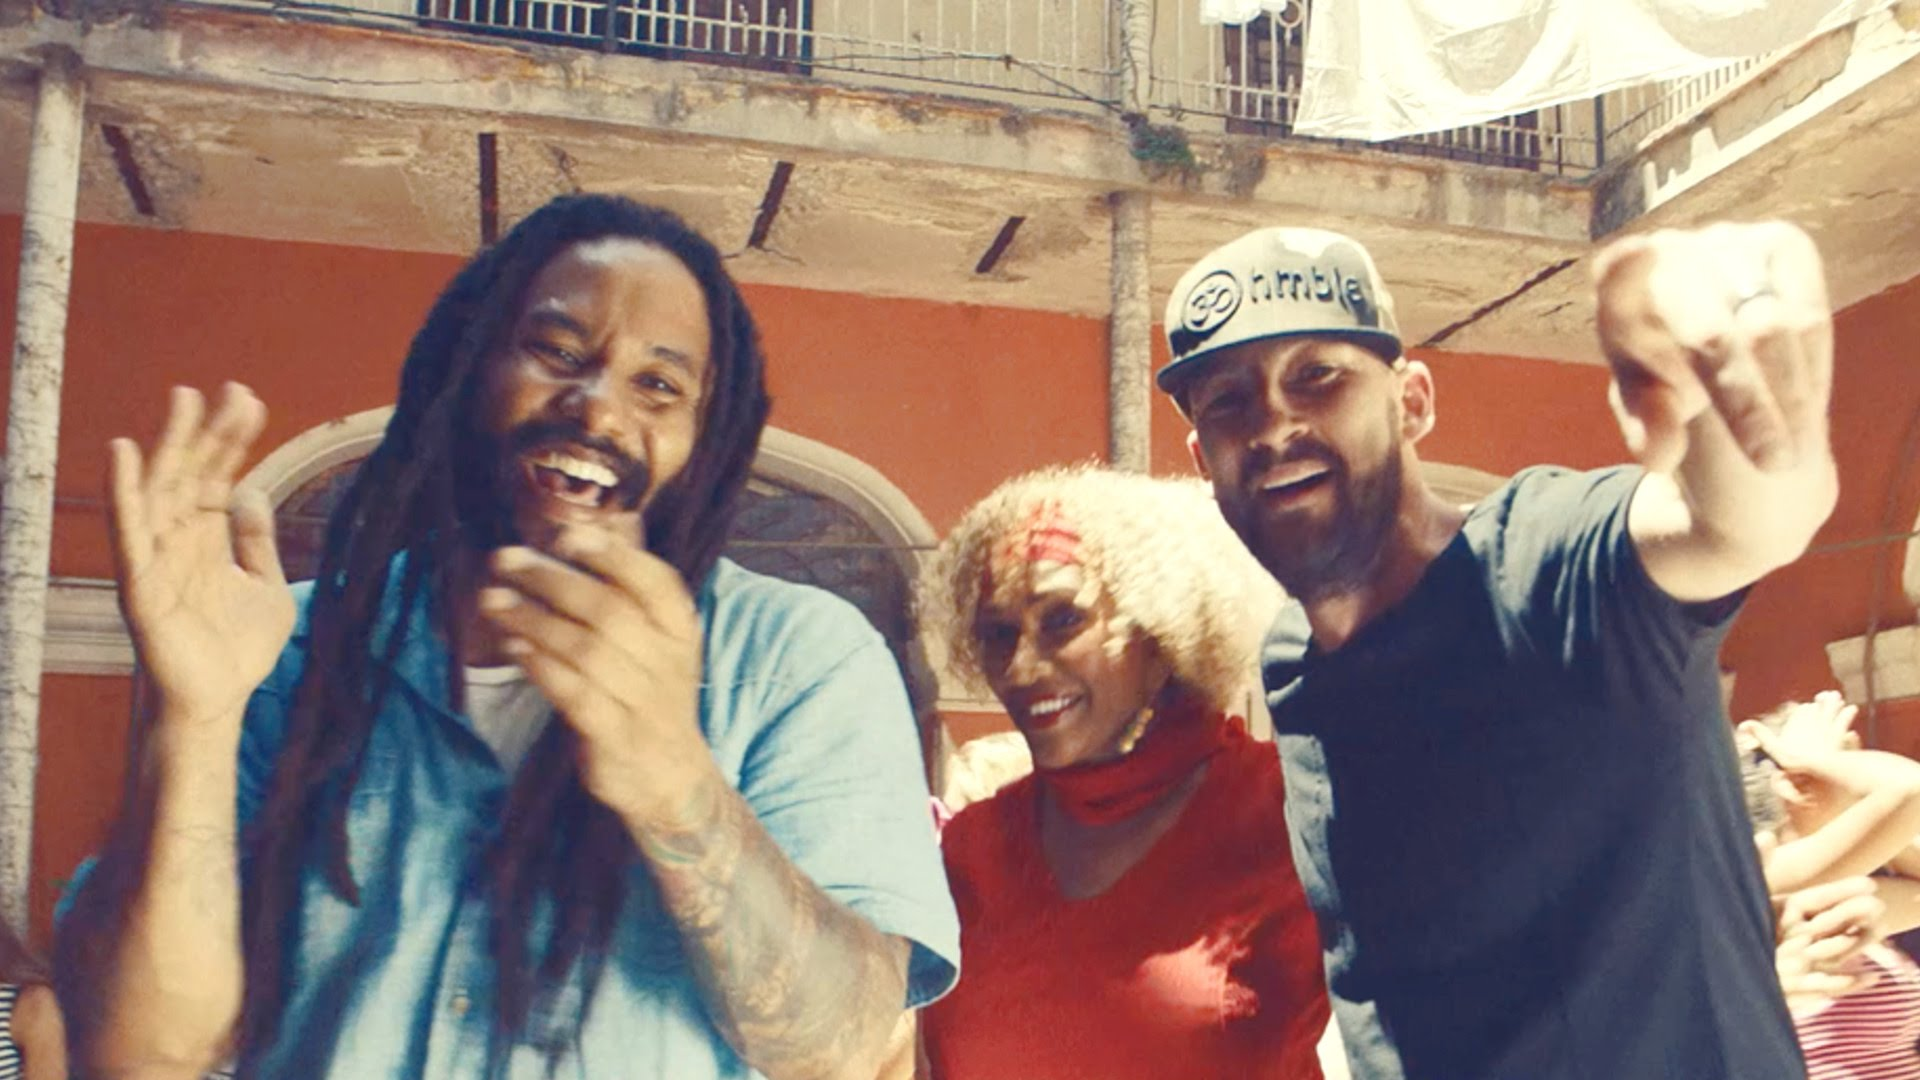 Gentleman & Ky-Mani Marley  drops Simmer Down (Control Your Temper) music video feat. Marcia Griffiths